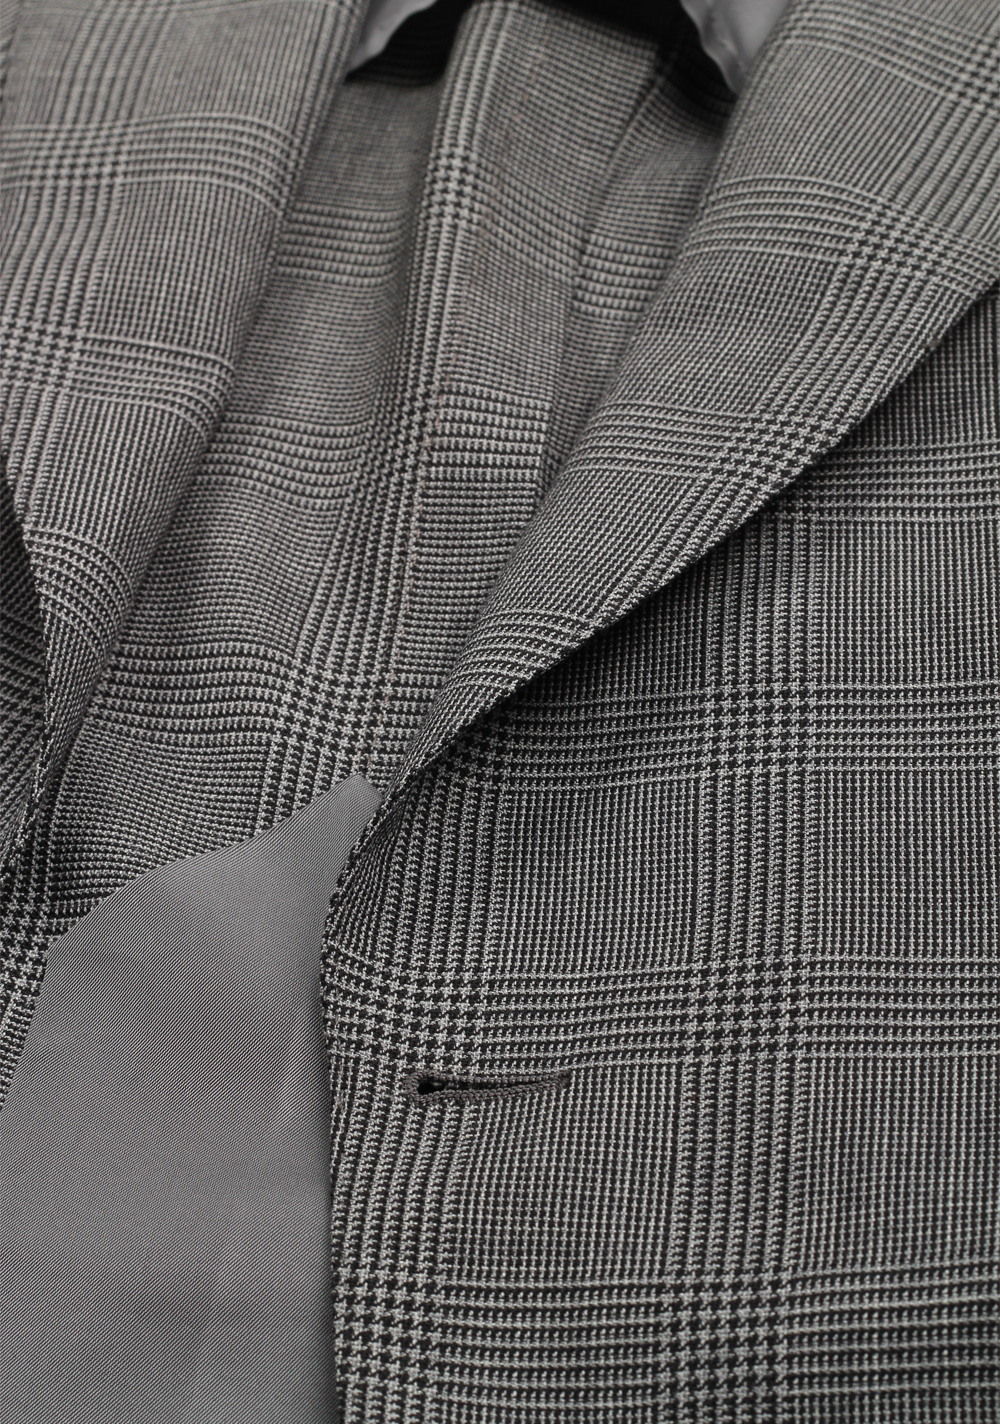 TOM FORD Atticus Gray Checked Suit Size 46 / 36R U.S. | Costume Limité